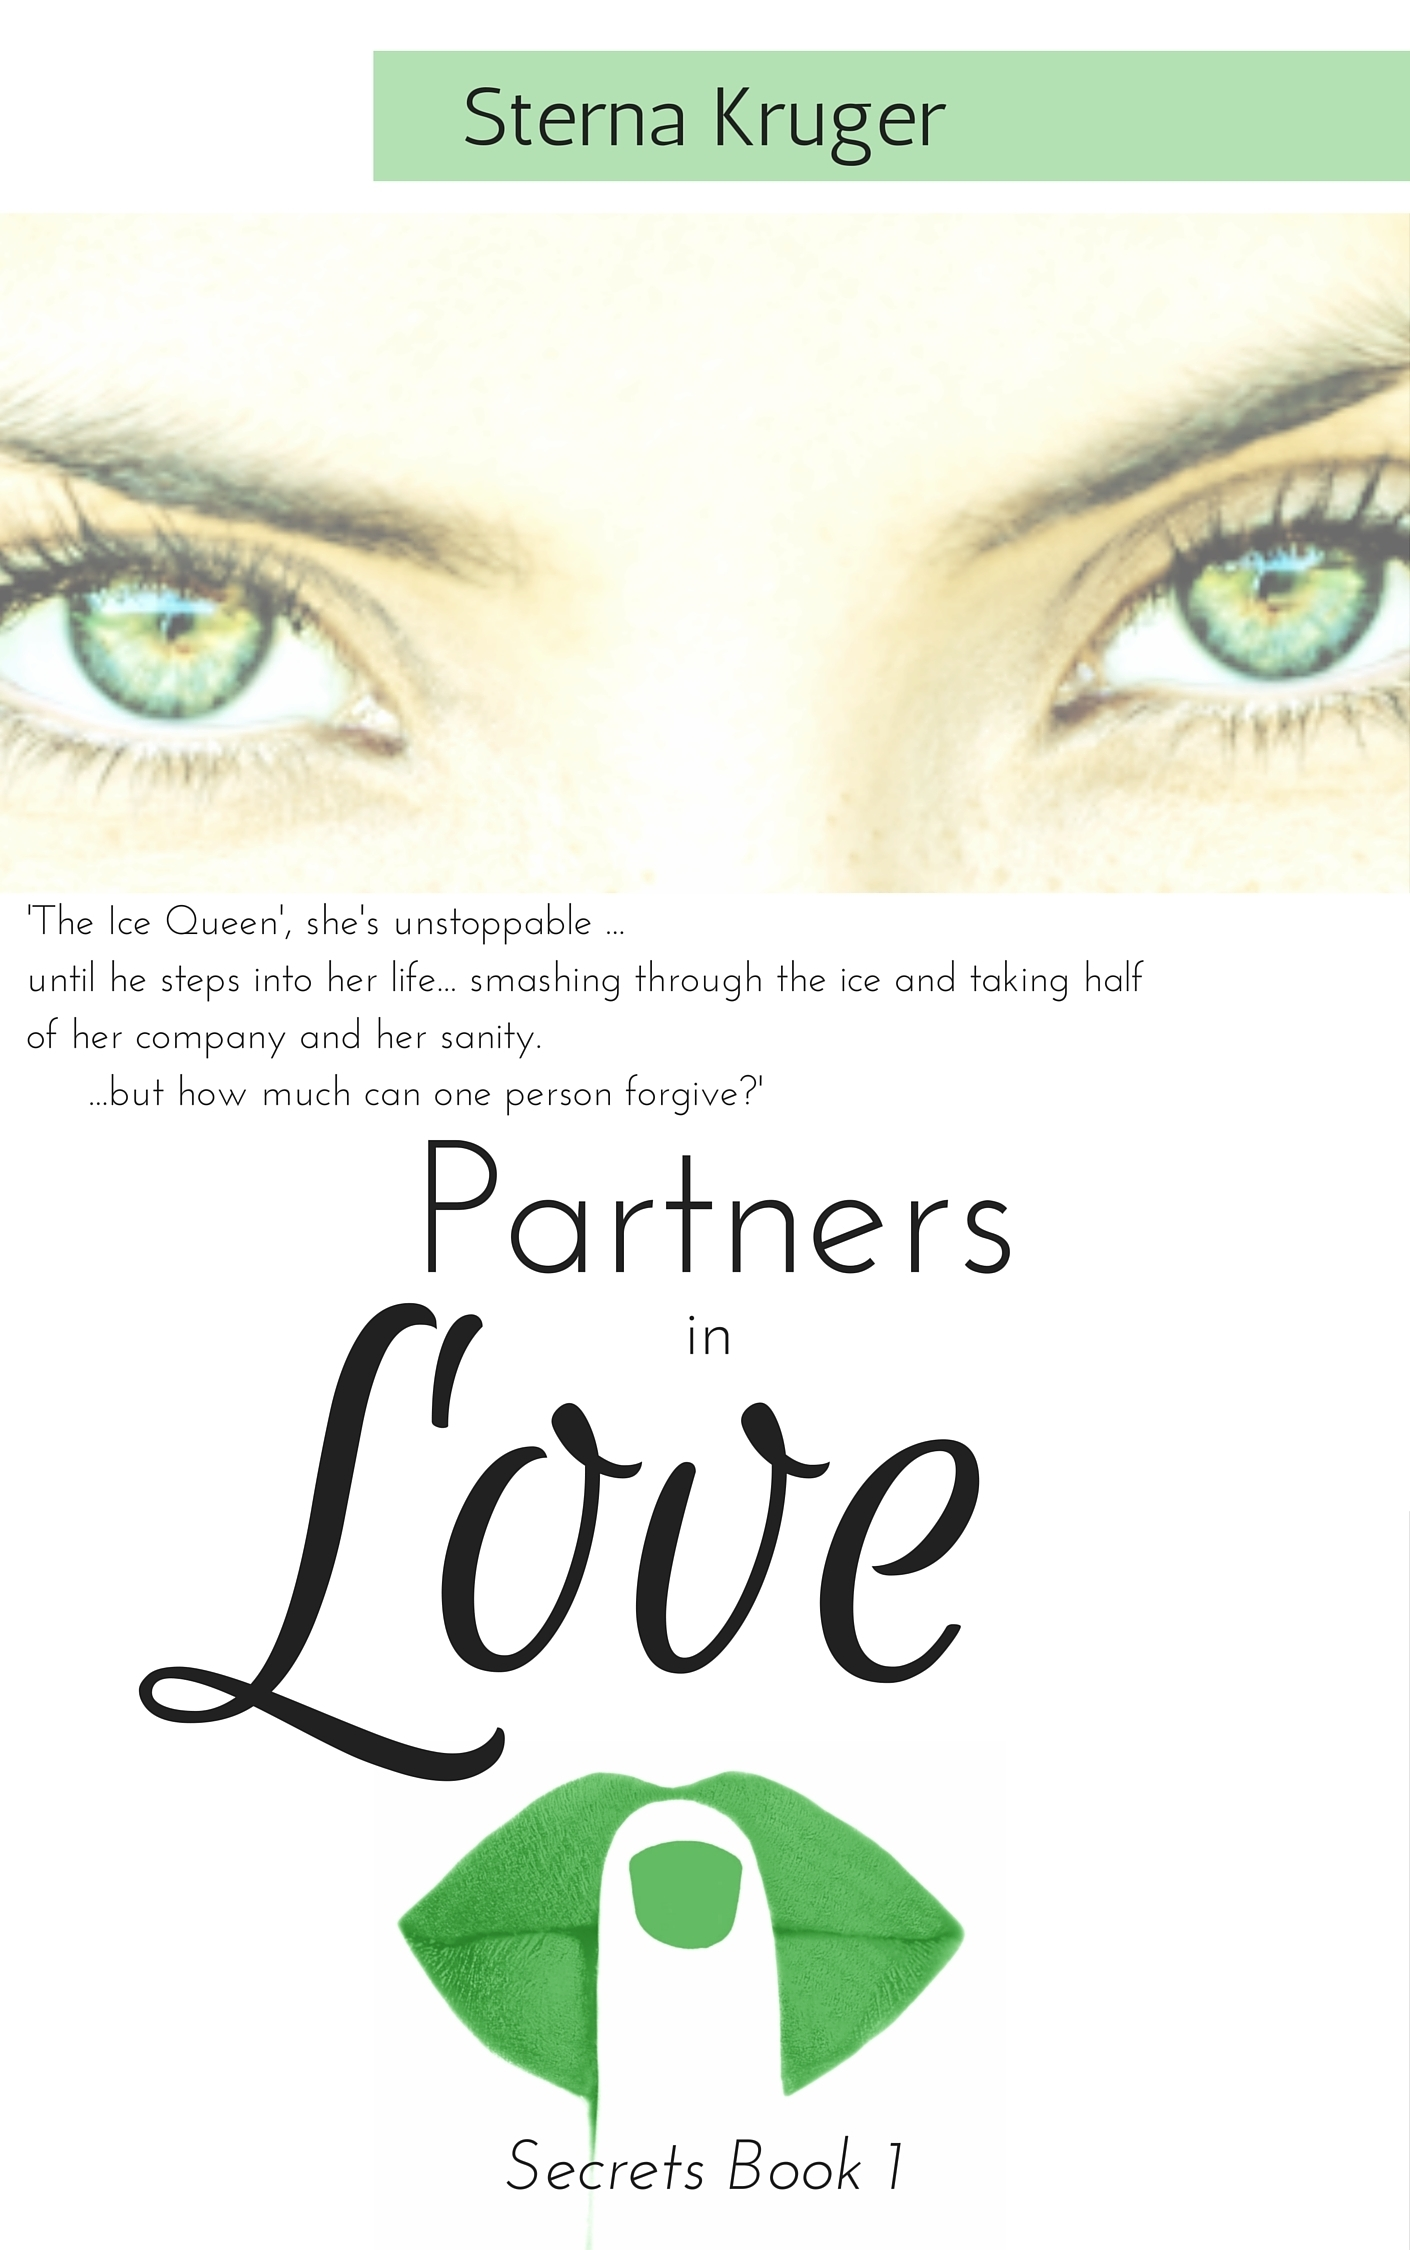 Partners in Love: Secrets Book 1  by  Sterna Kruger